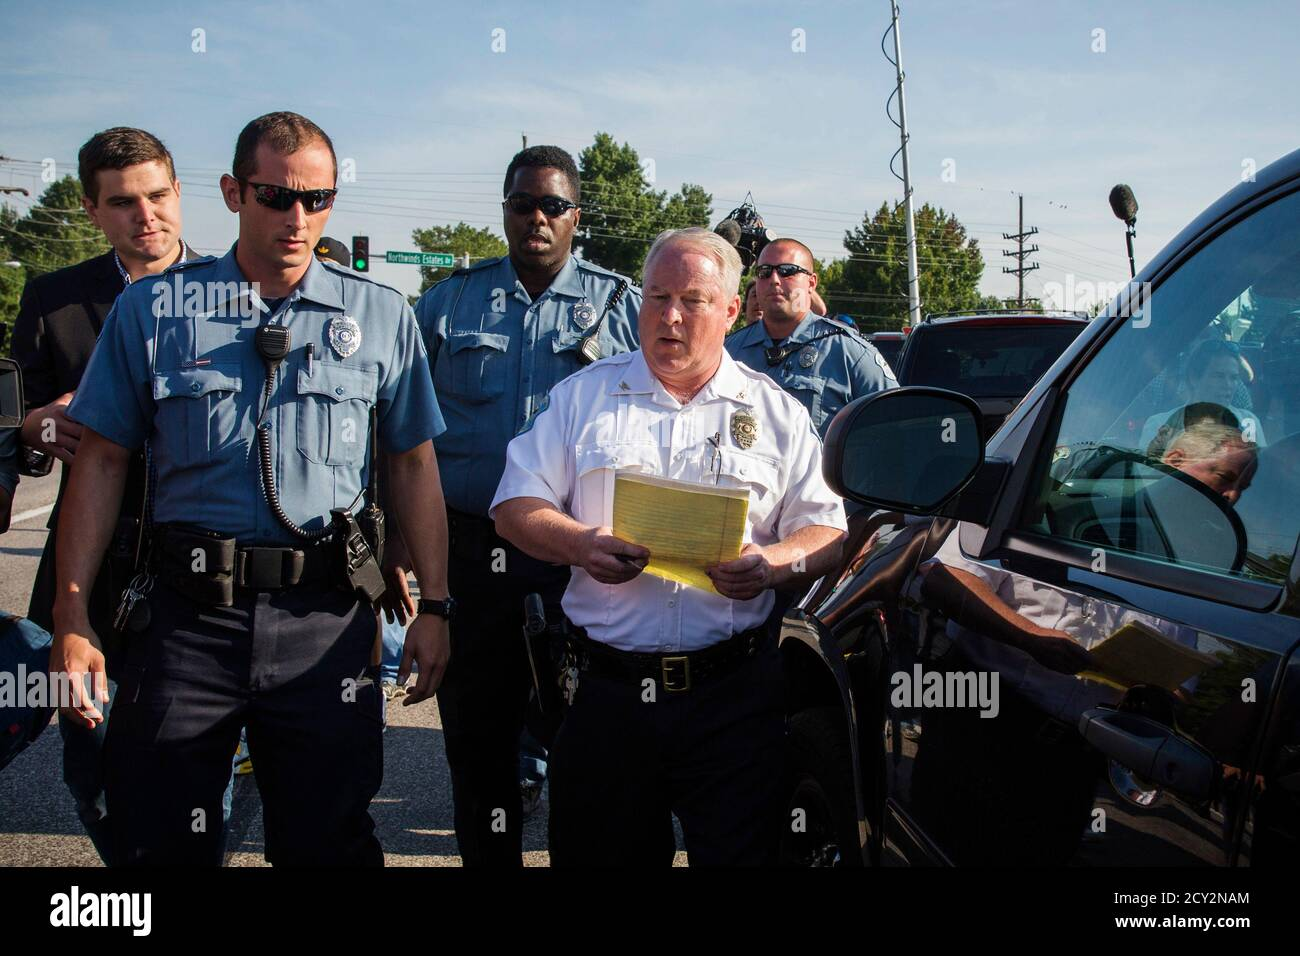 Ferguson Police Chief Thomas Jackson departs after announcing the name of the officer involved in the shooting of Michael Brown as officer Darren Wilson, in Ferguson, Missouri August 15, 2014. The briefing was held near a QuikTrip convenience store that had been burned amid protests over the shooting of Brown, 18, last Saturday. REUTERS/Lucas Jackson (UNITED STATES - Tags: CIVIL UNREST CRIME LAW) Banque D'Images